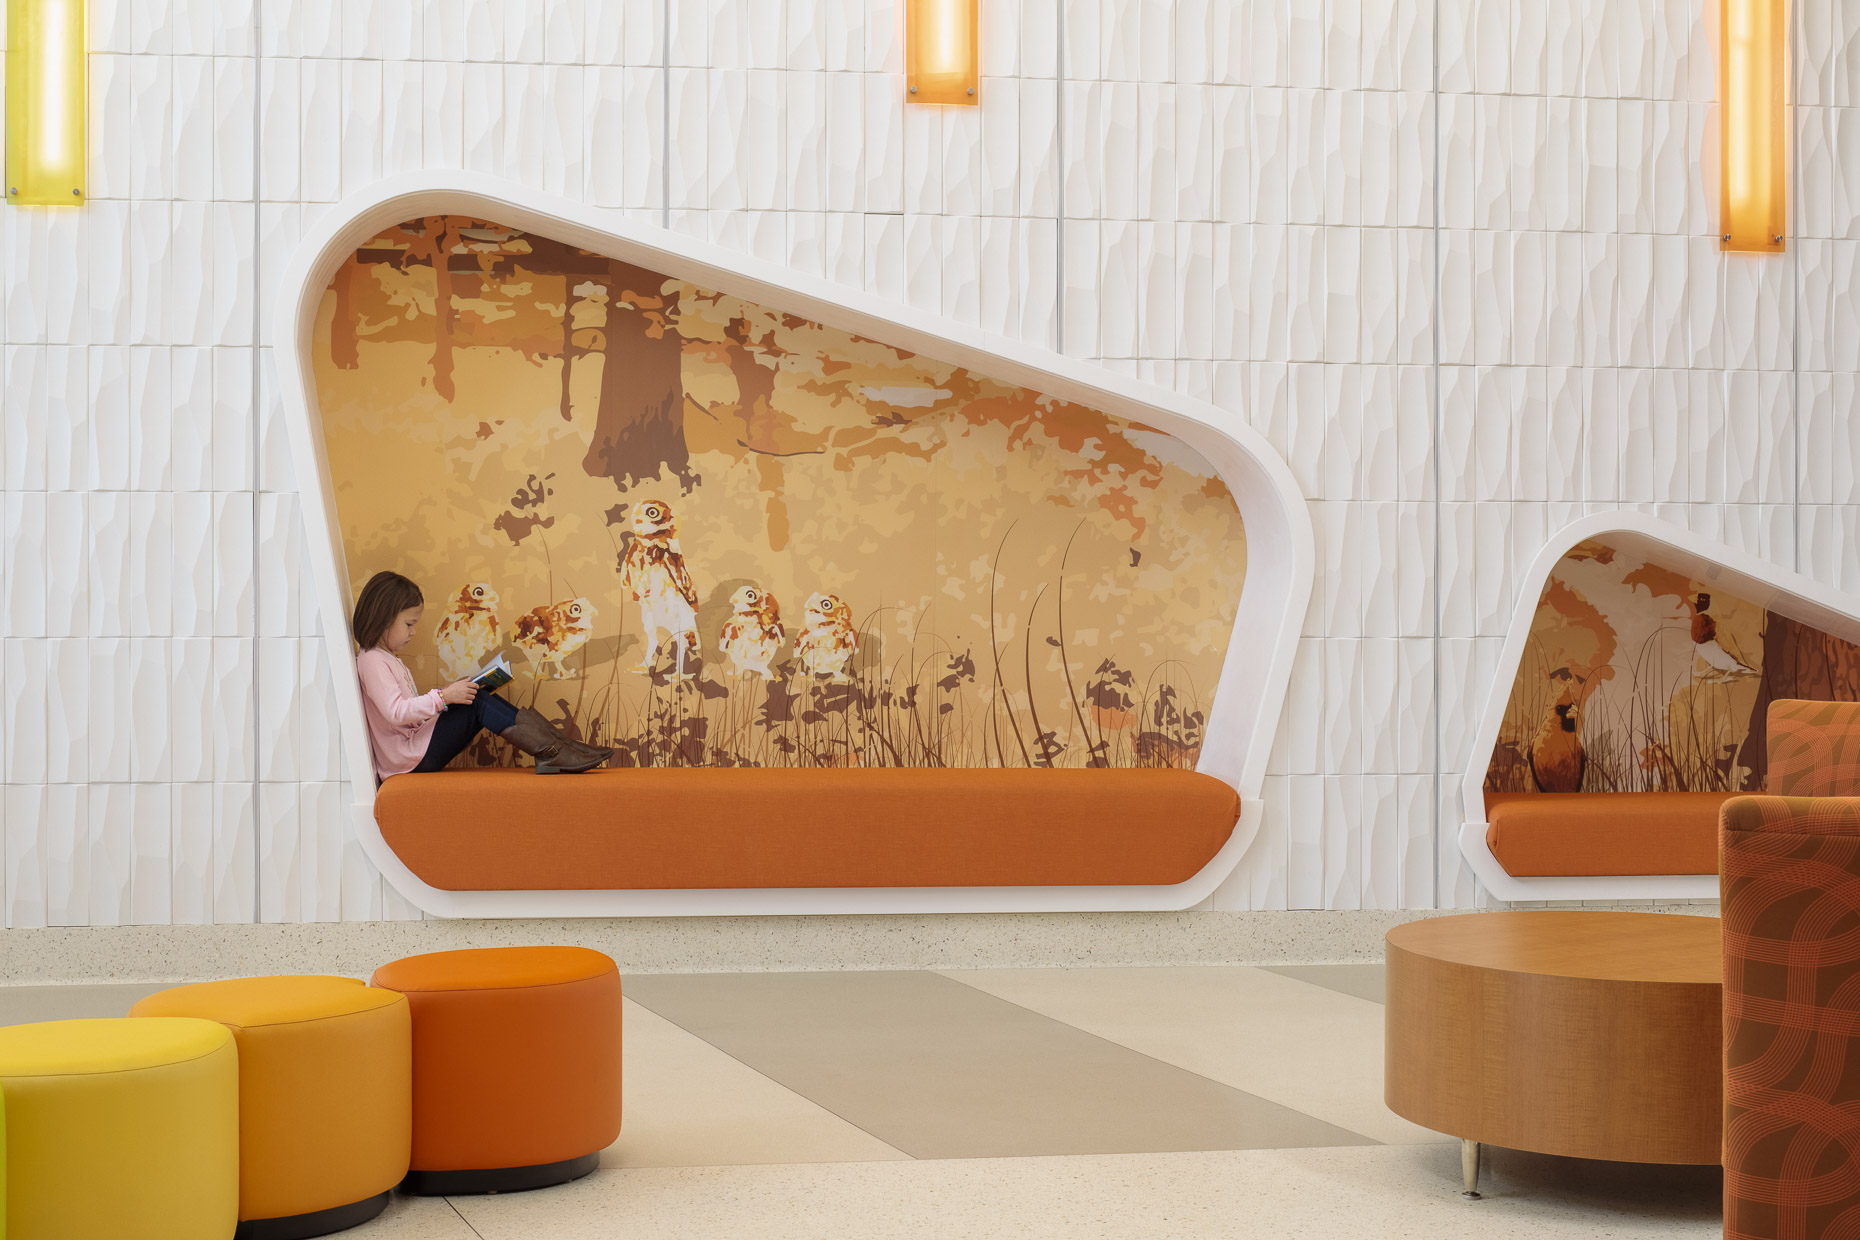 UofL Physicians Novak Center for Children by GBBN photographed by Brad Feinknopf based in Columbus, Ohio